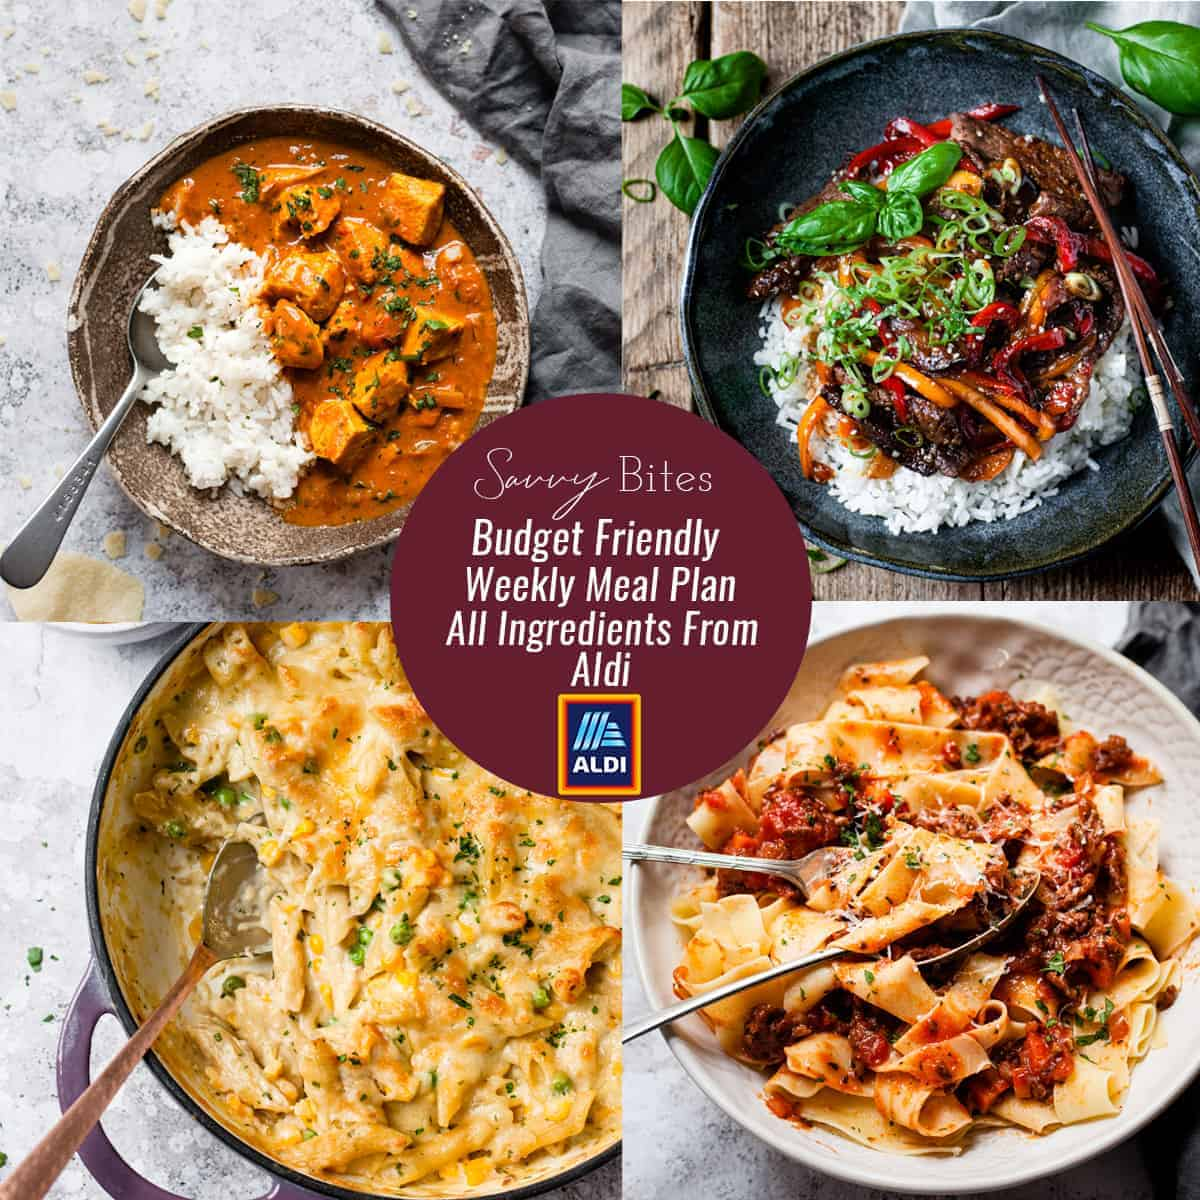 Aldi Meal Plan Budget menu